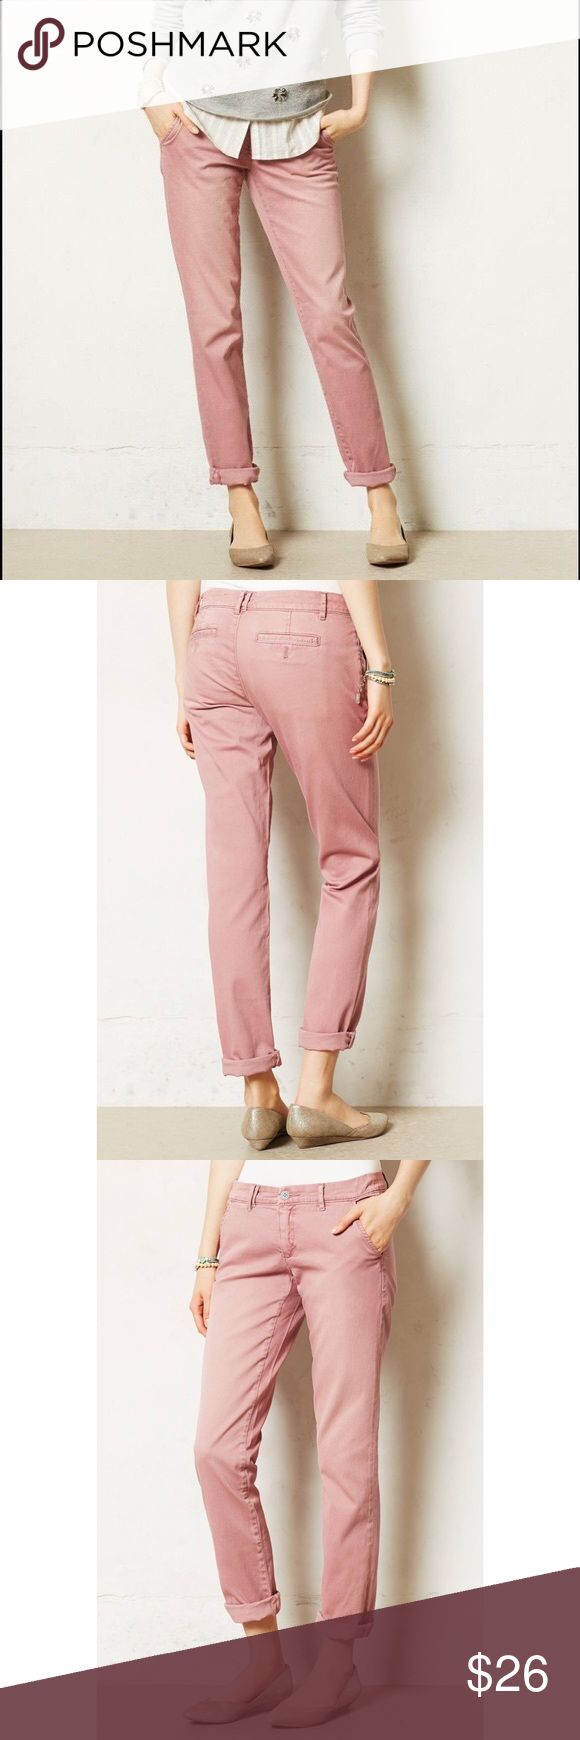 Pilcro Hyphen Fit chino pink pants Sz 29. 5 Anthro Pilcro Hyphen chino pants in pink (dusty rose) size 29. 5 pockets, zipper closure and single button, belt loops. In excellent condition. Who said wardrobe staples have to be boring and khaki? Reliable as they are colorful, Pilcro designs inspire layering, mixing-and-matching, and always have a personality of their own. Slightly relaxed and incredibly soft, these casual chinos are weekend-ready with booties and a slouchy pullover. Front, back…